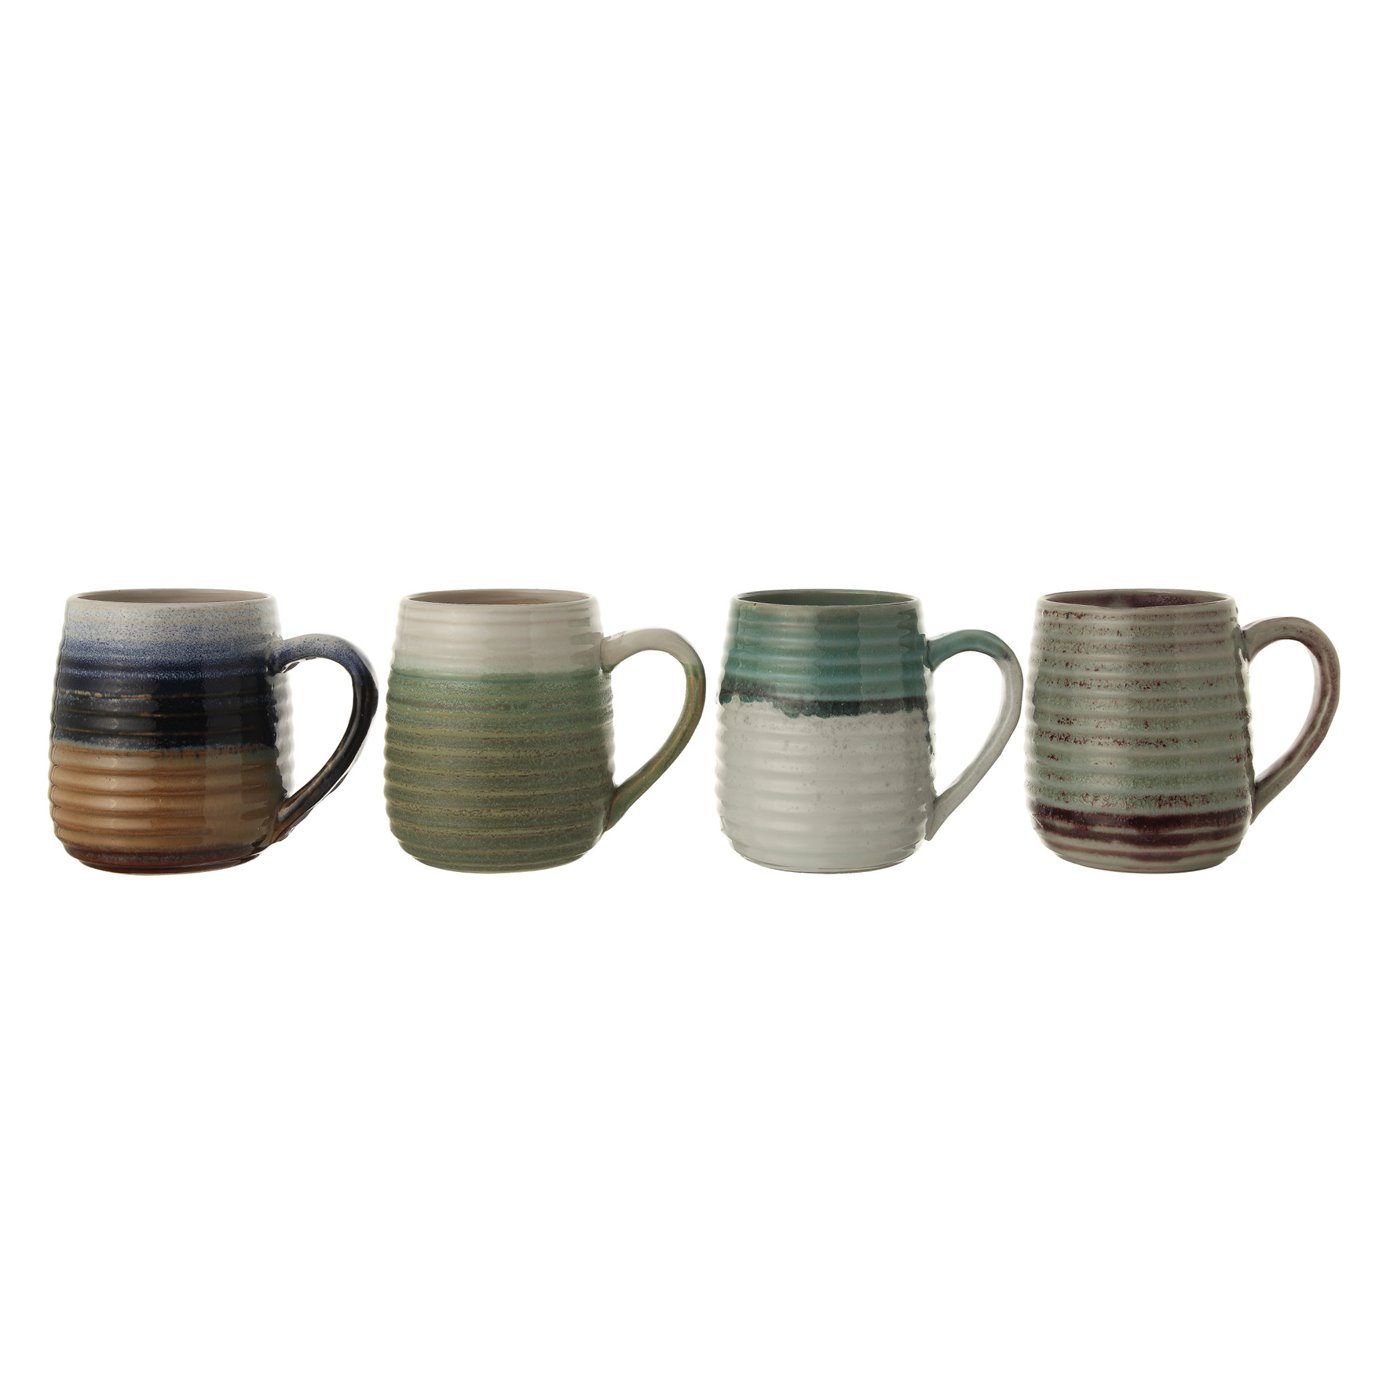 Large Multicolor Stoneware Mugs with Ribbed Sides (Set of 4 Colors)